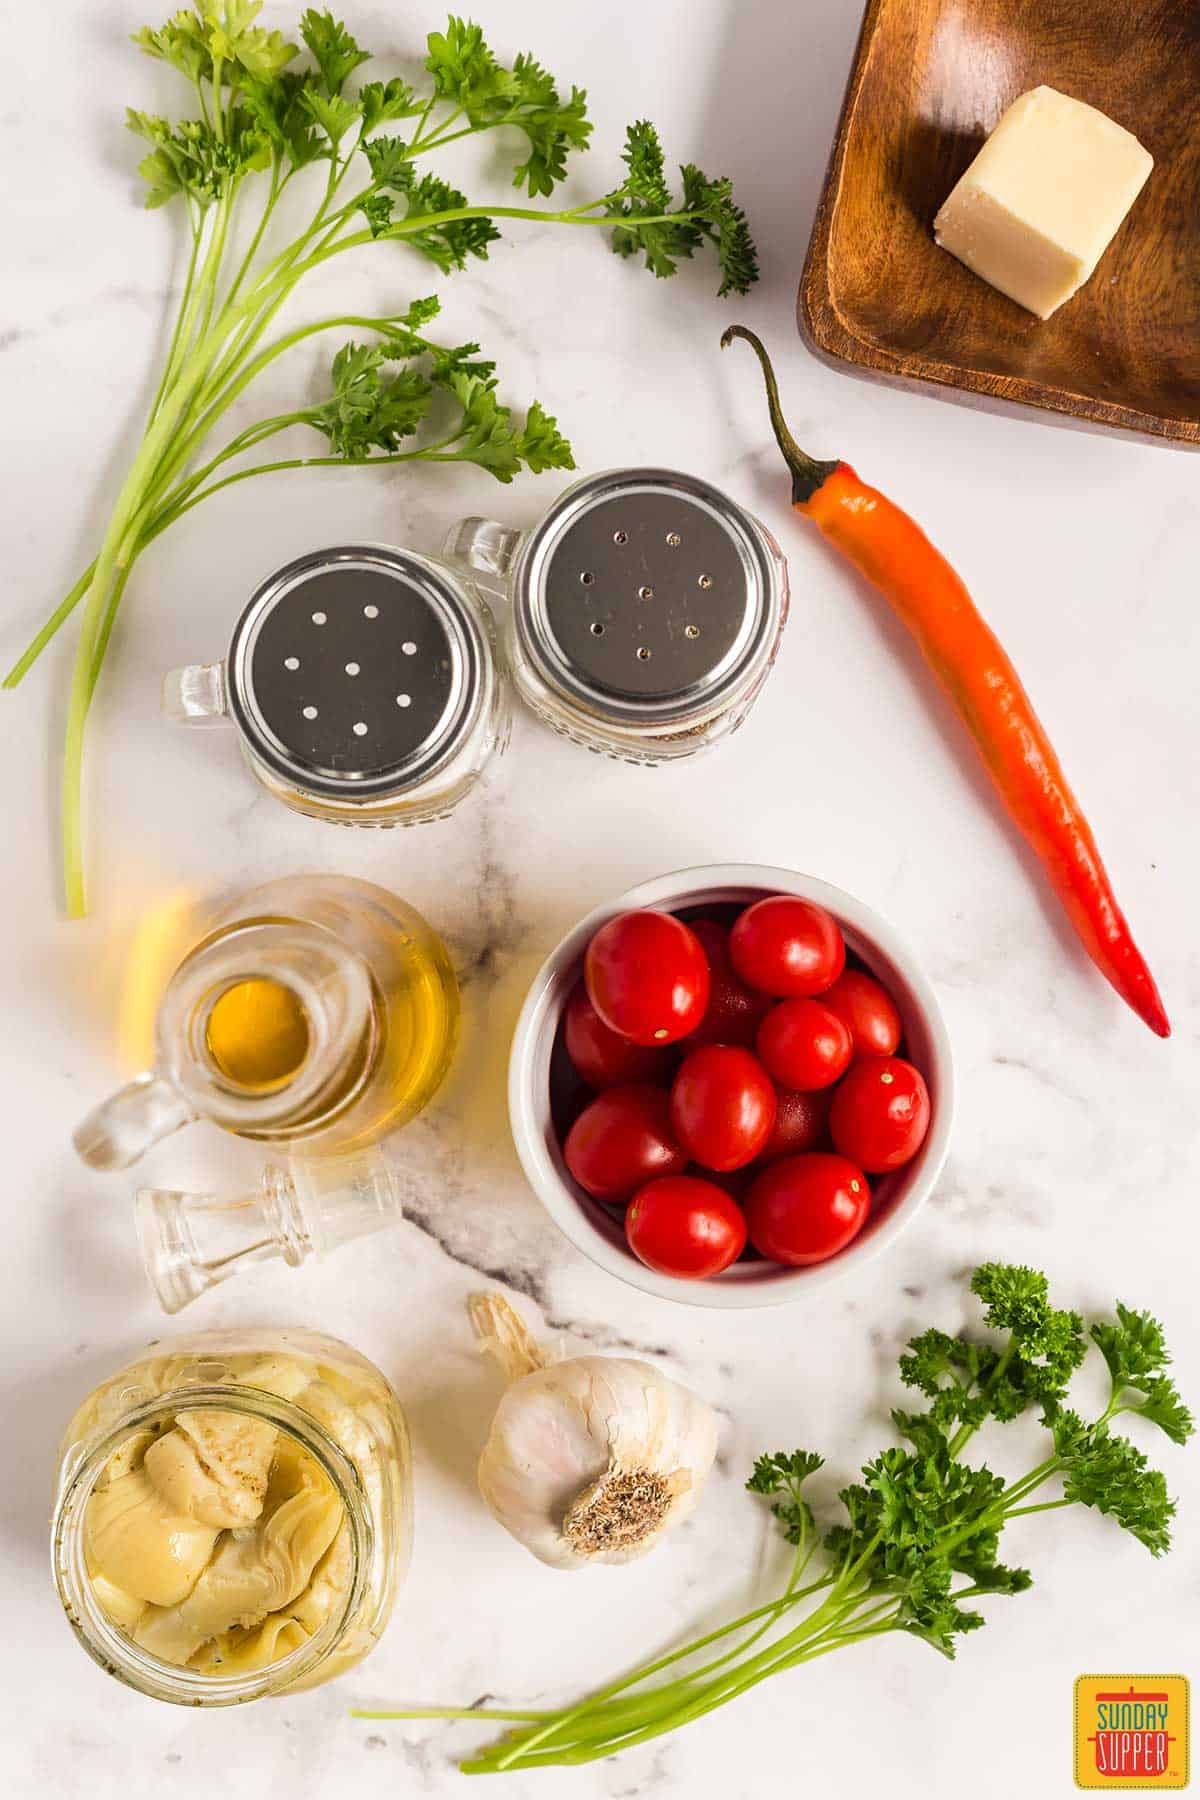 Ingredients to make the recipe on a white surface: cherry tomatoes, parsley, garlic, artichoke hearts, olive oil, a red chili pepper, salt and pepper shakers, and butter